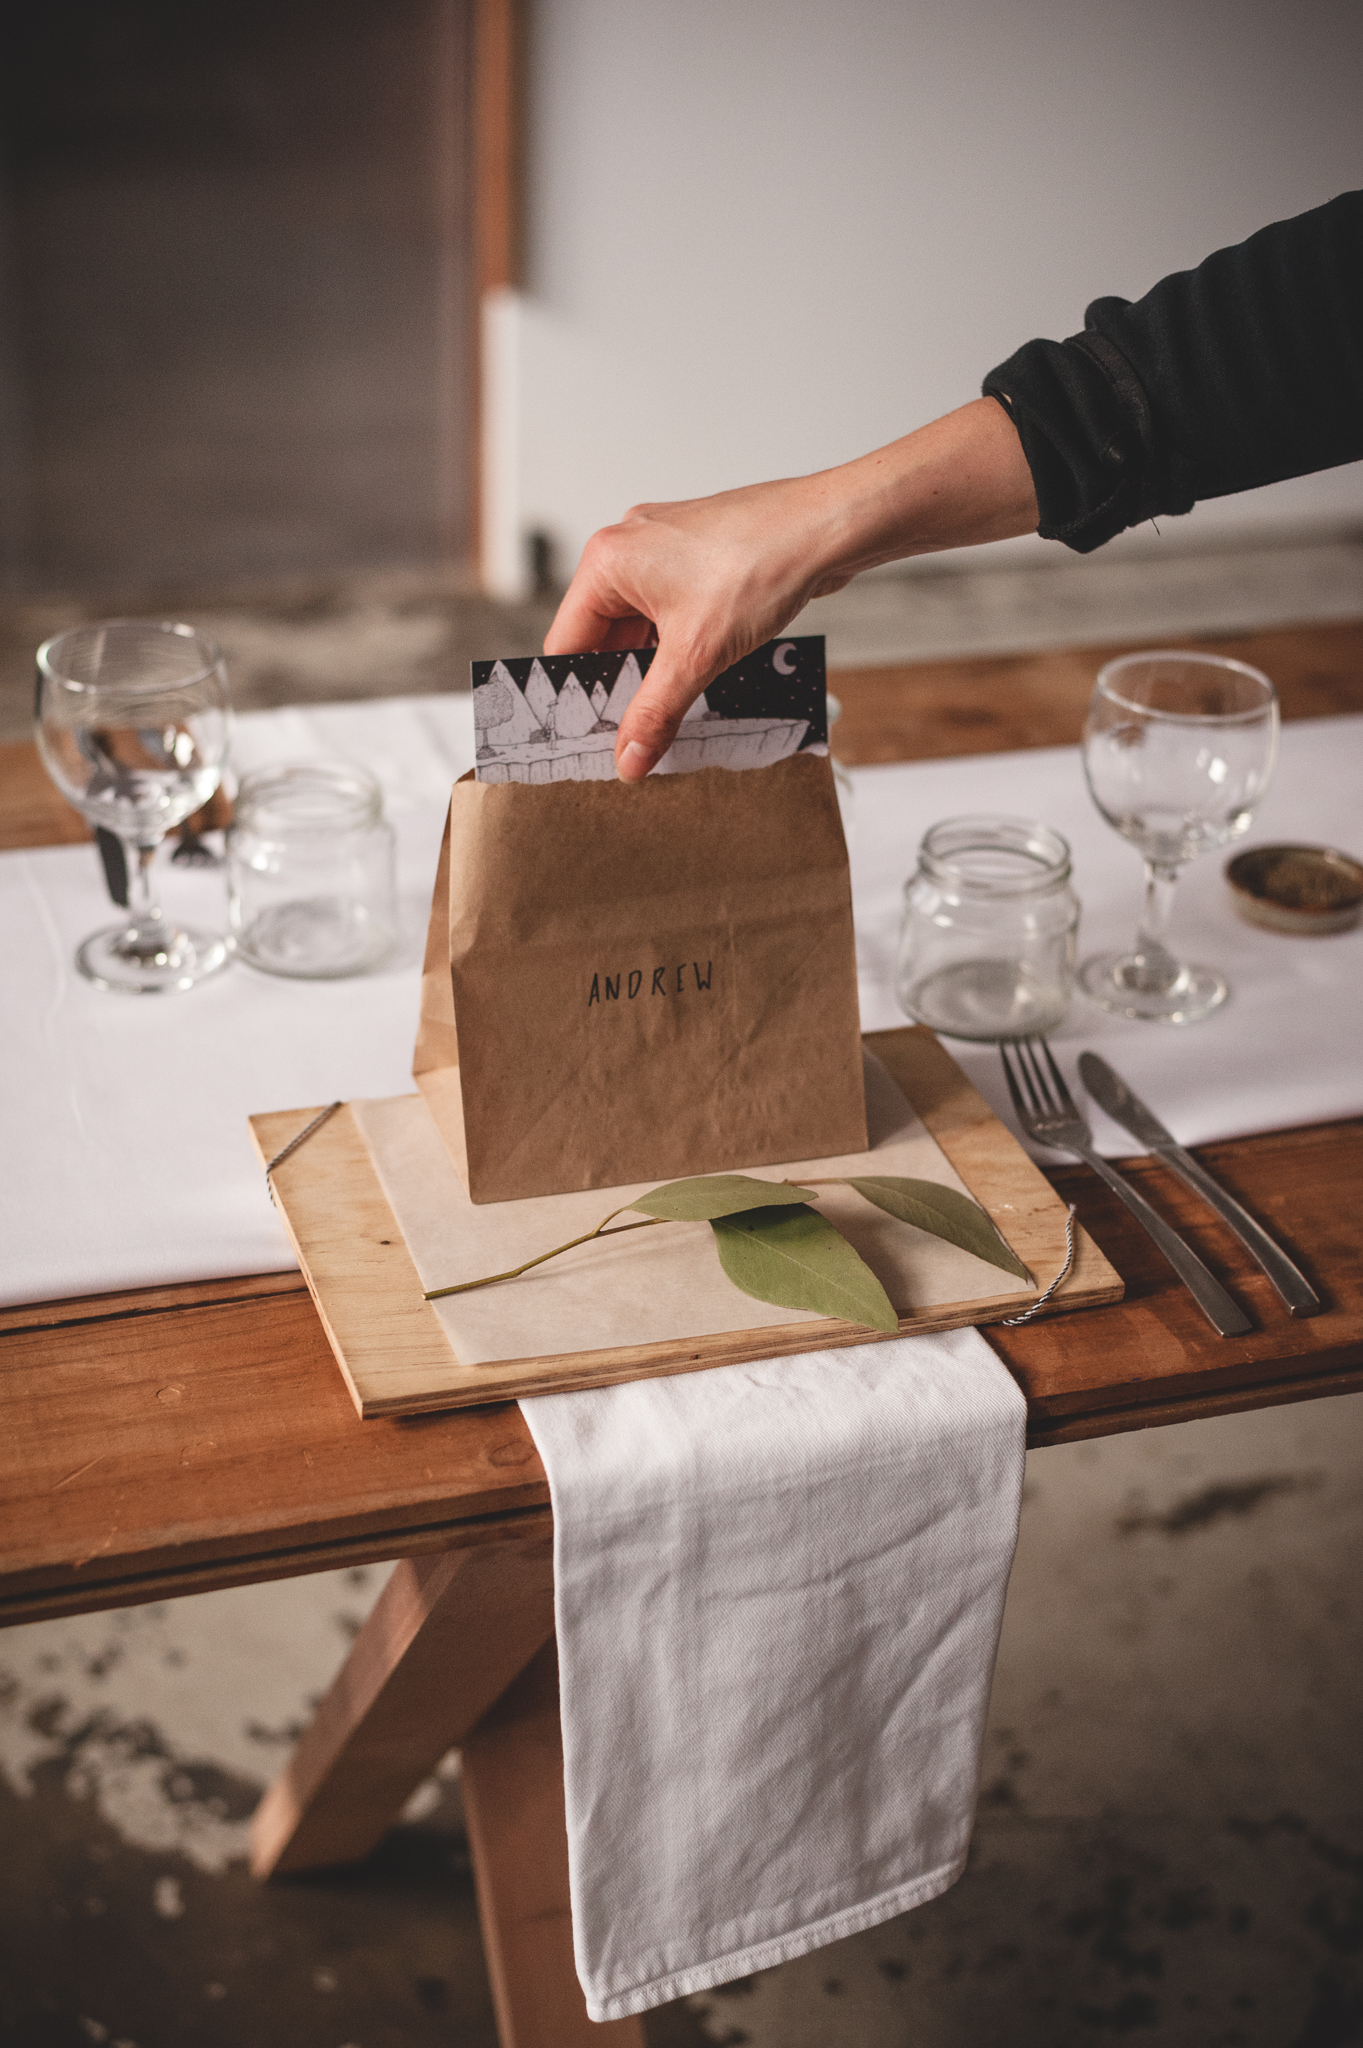 How to Plan an Eco-Friendly Event ft. Yonder Collective | Eco-Friendly Living by The Foraged Life